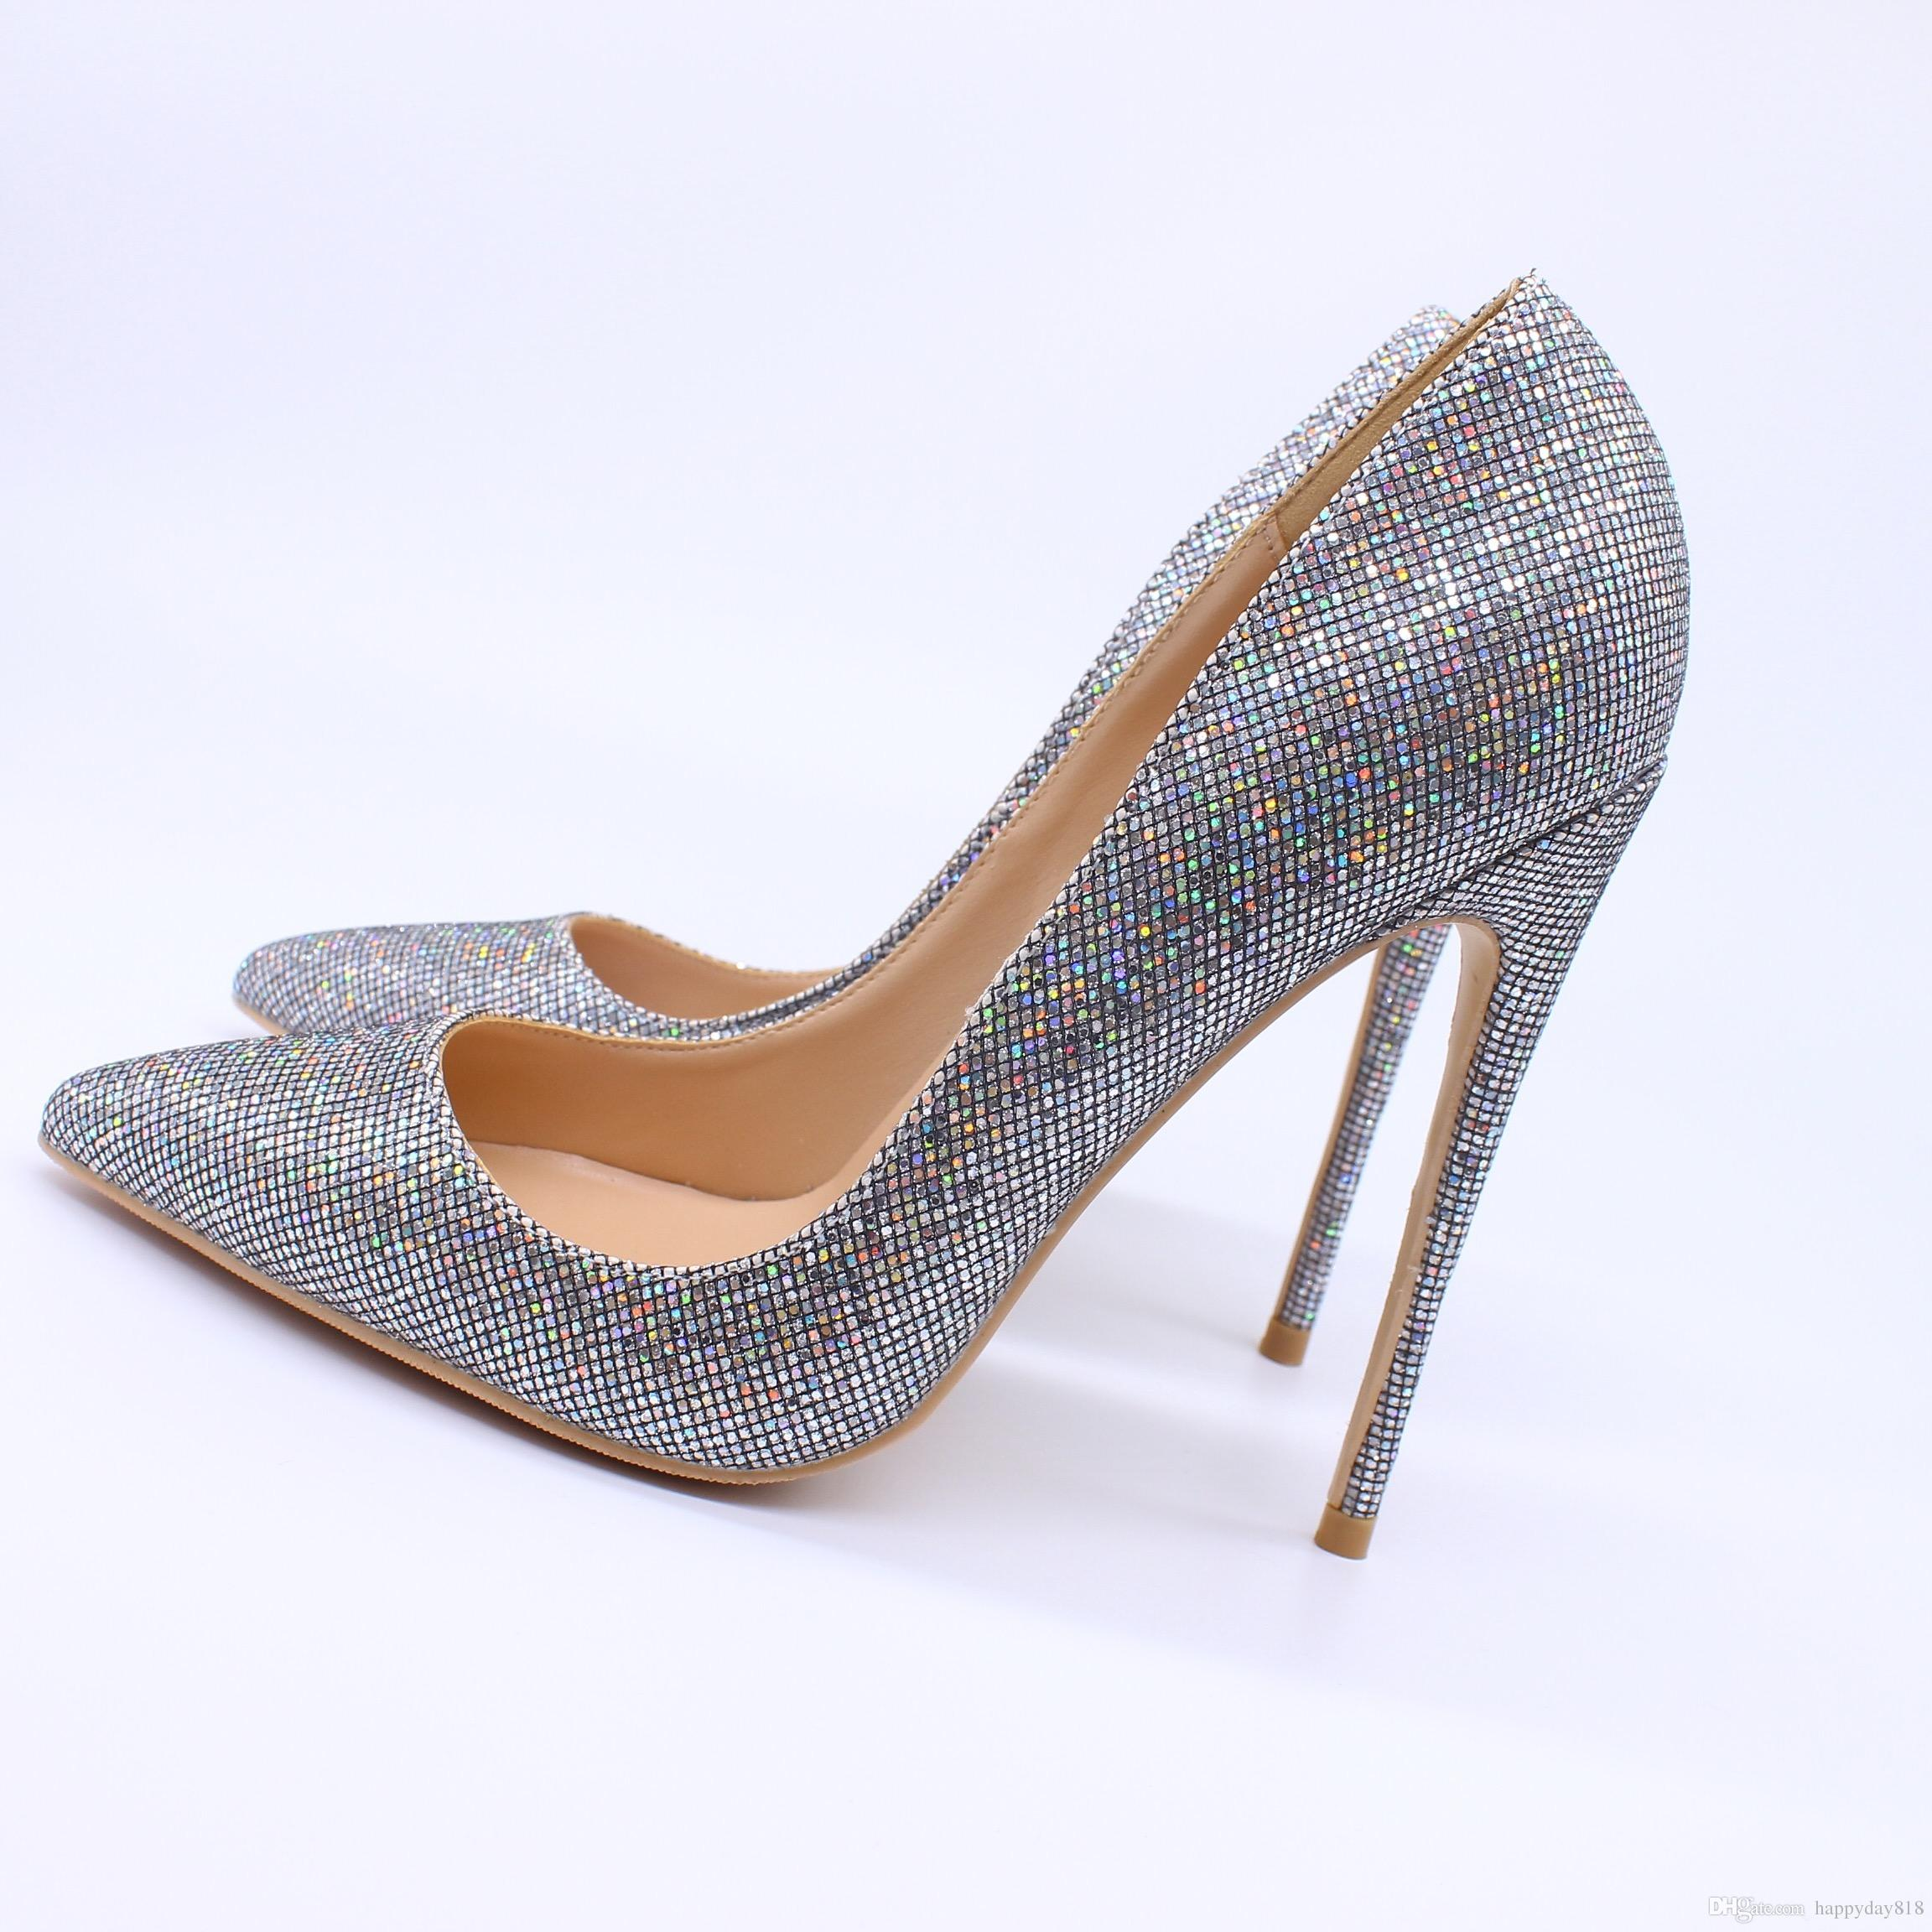 84f5a01905 Free shipping fashion women pumps Multi Glitter strass pointed toe high  heels sandals shoes boots bride wedding pumps 120mm 100mm 80mm